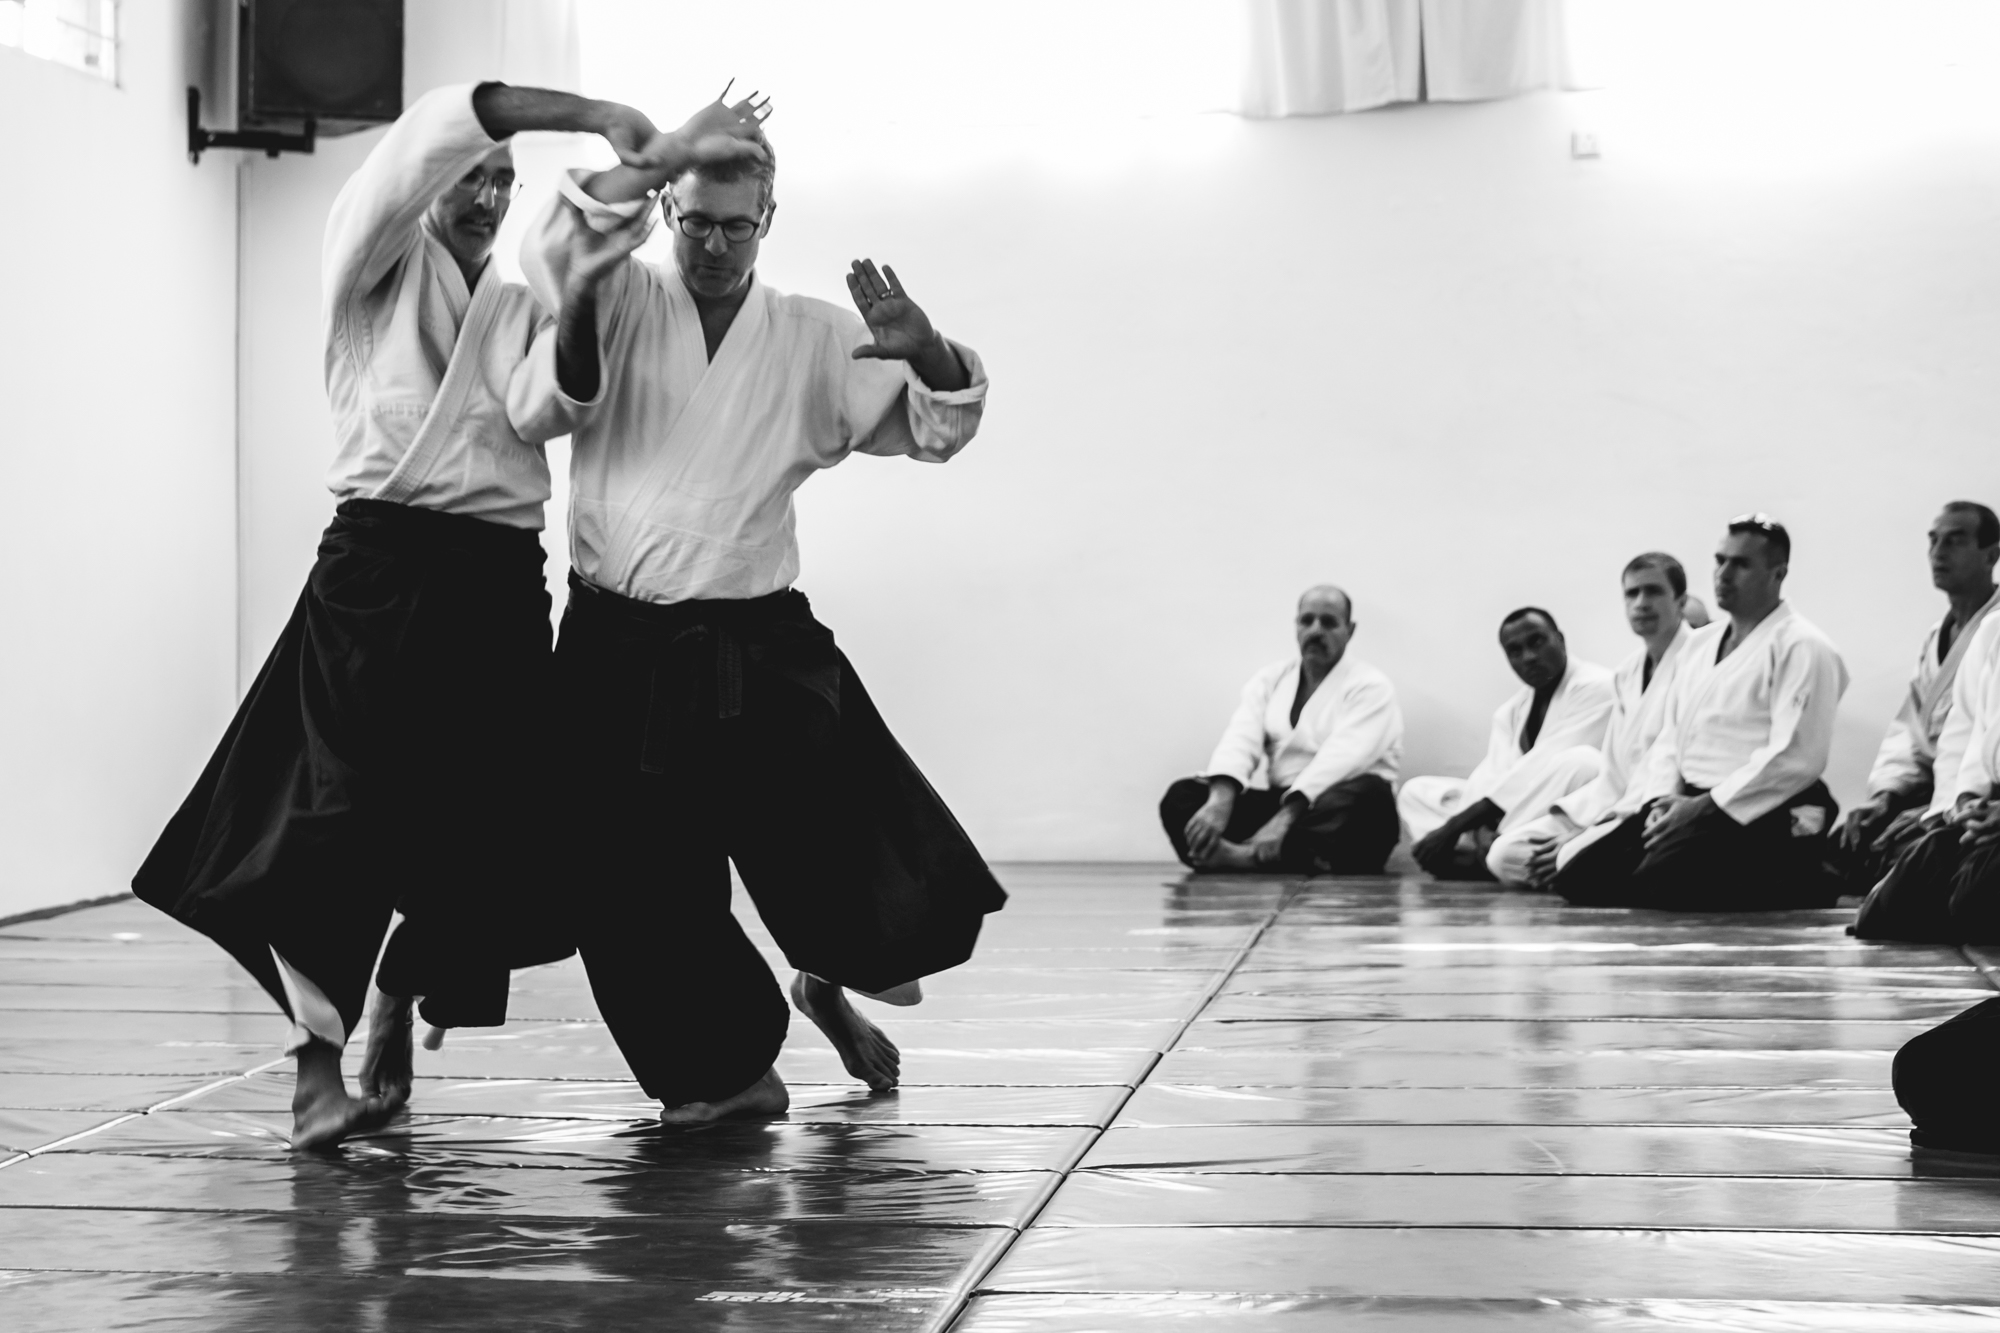 miles kessler, aikido, the integral dojo